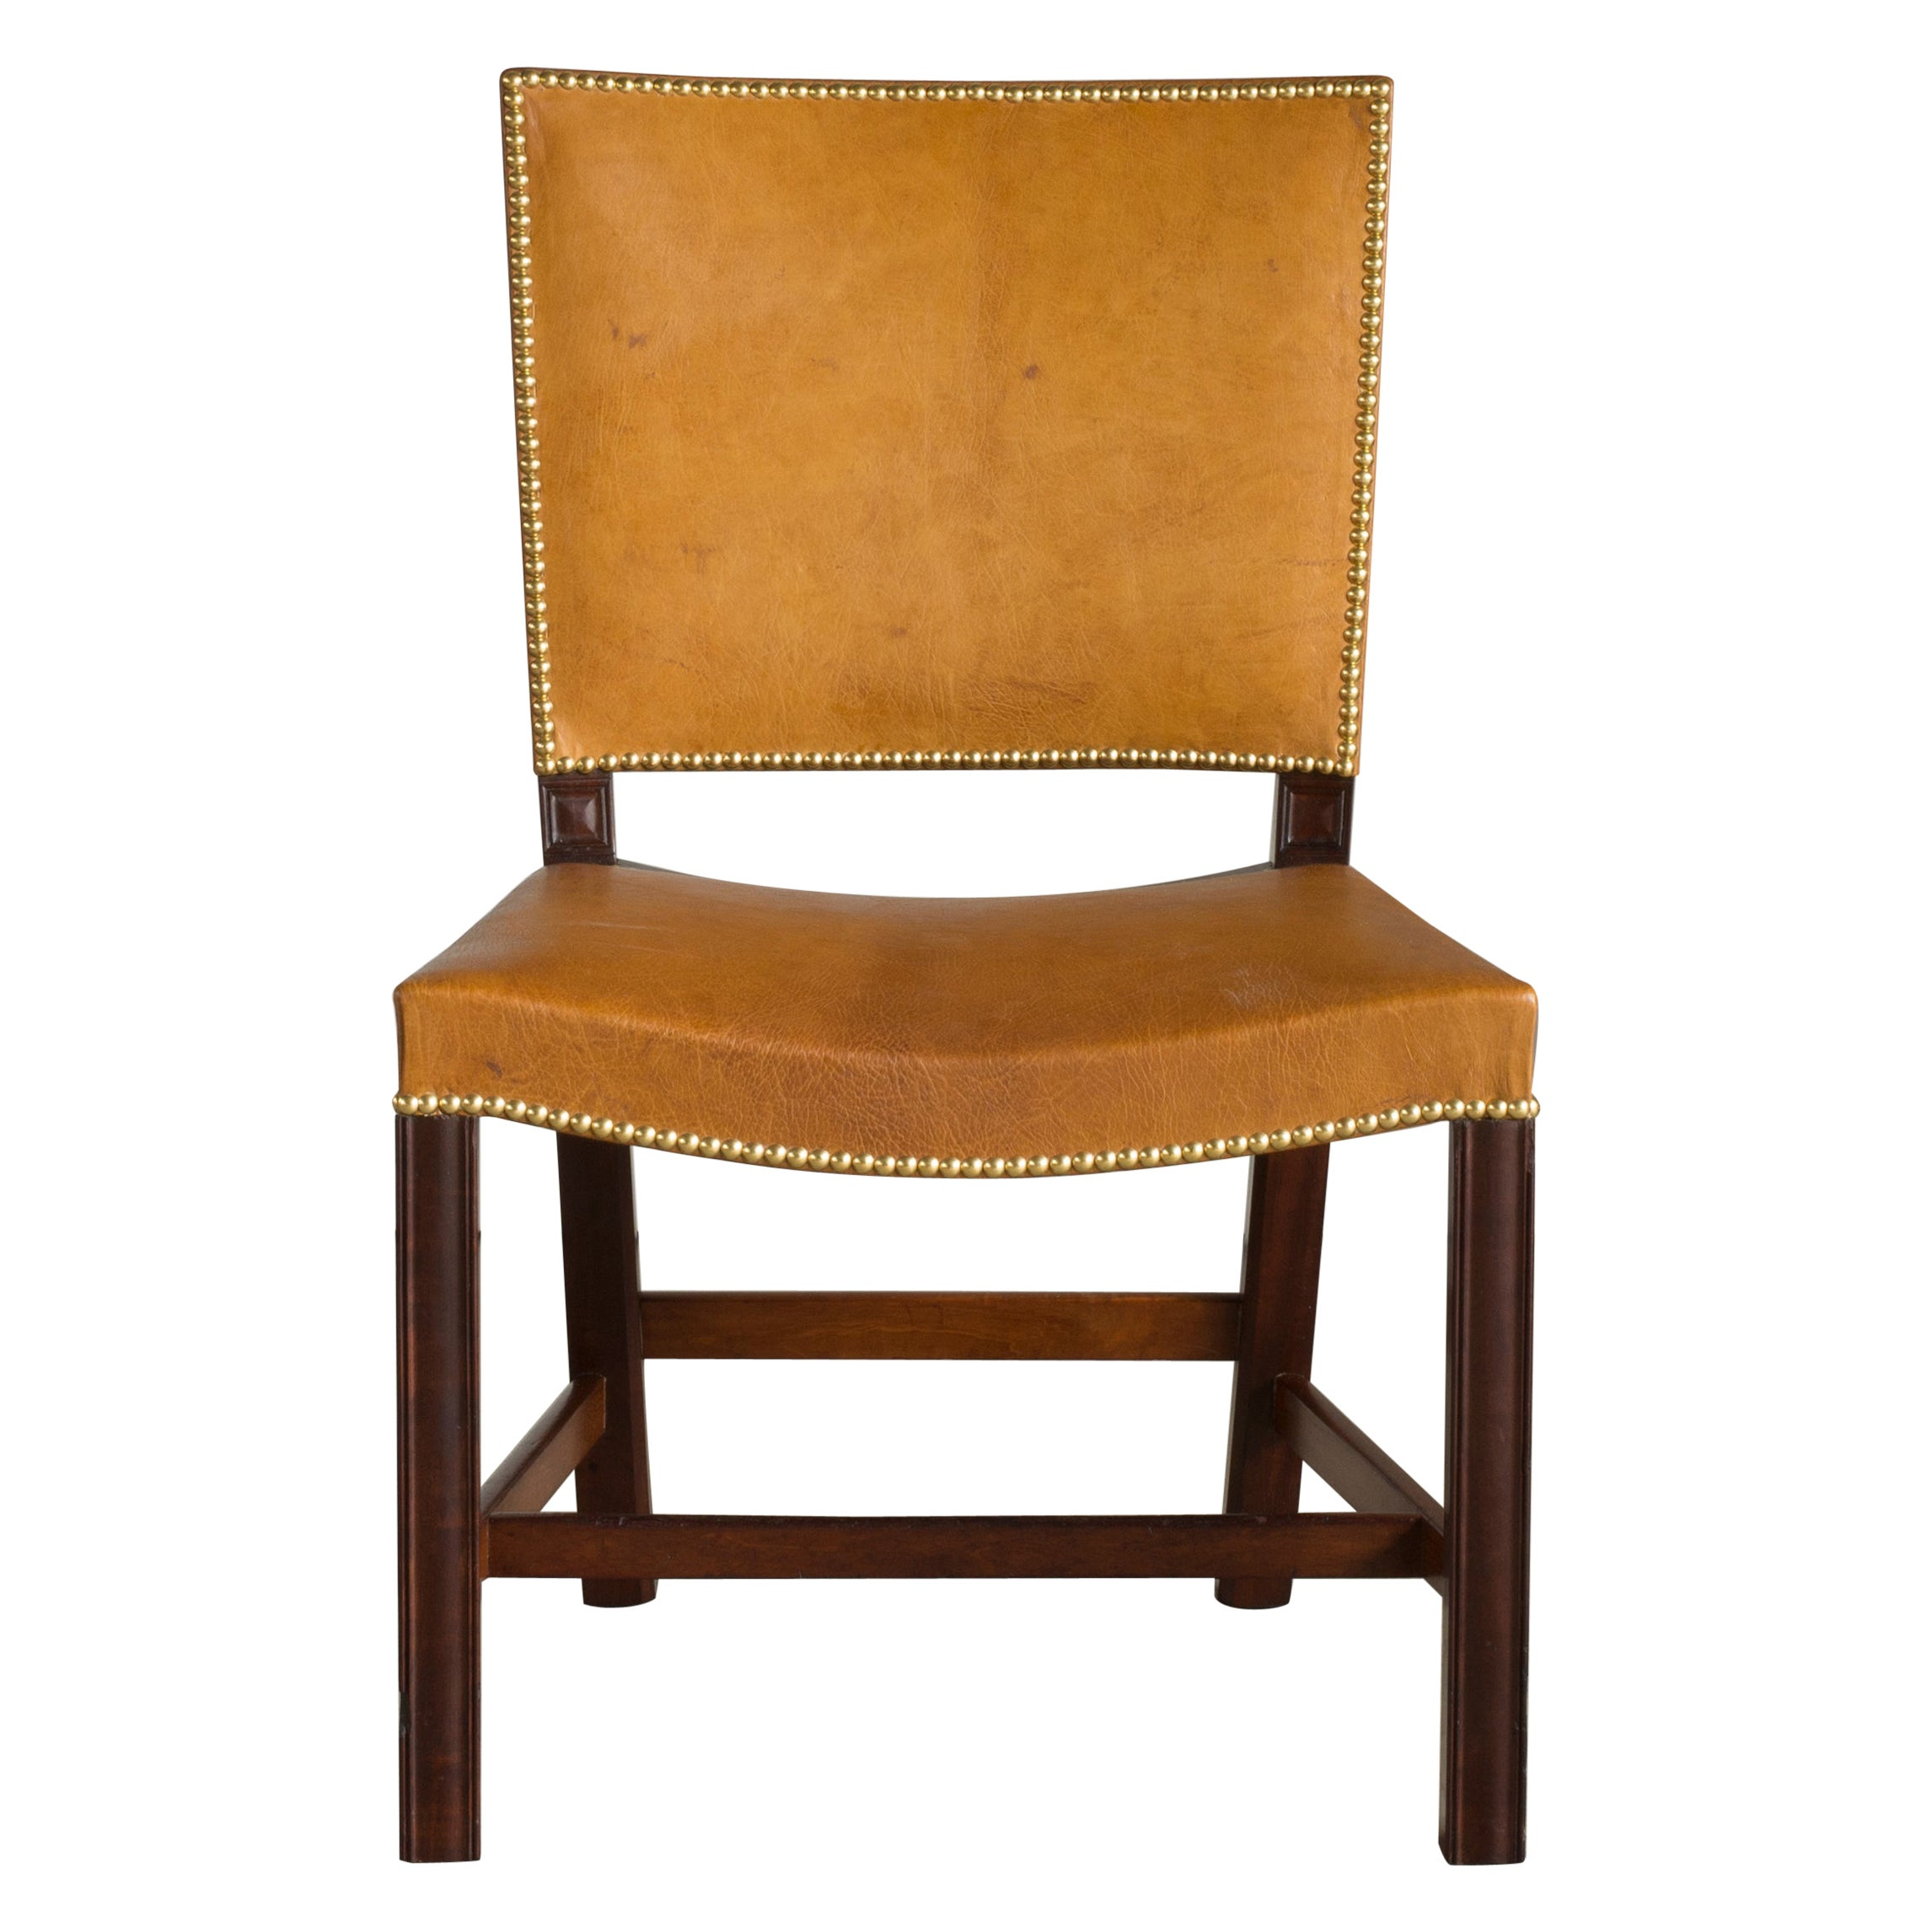 Kaare Klint Red Chair of Cuban Mahogany and Niger Leather